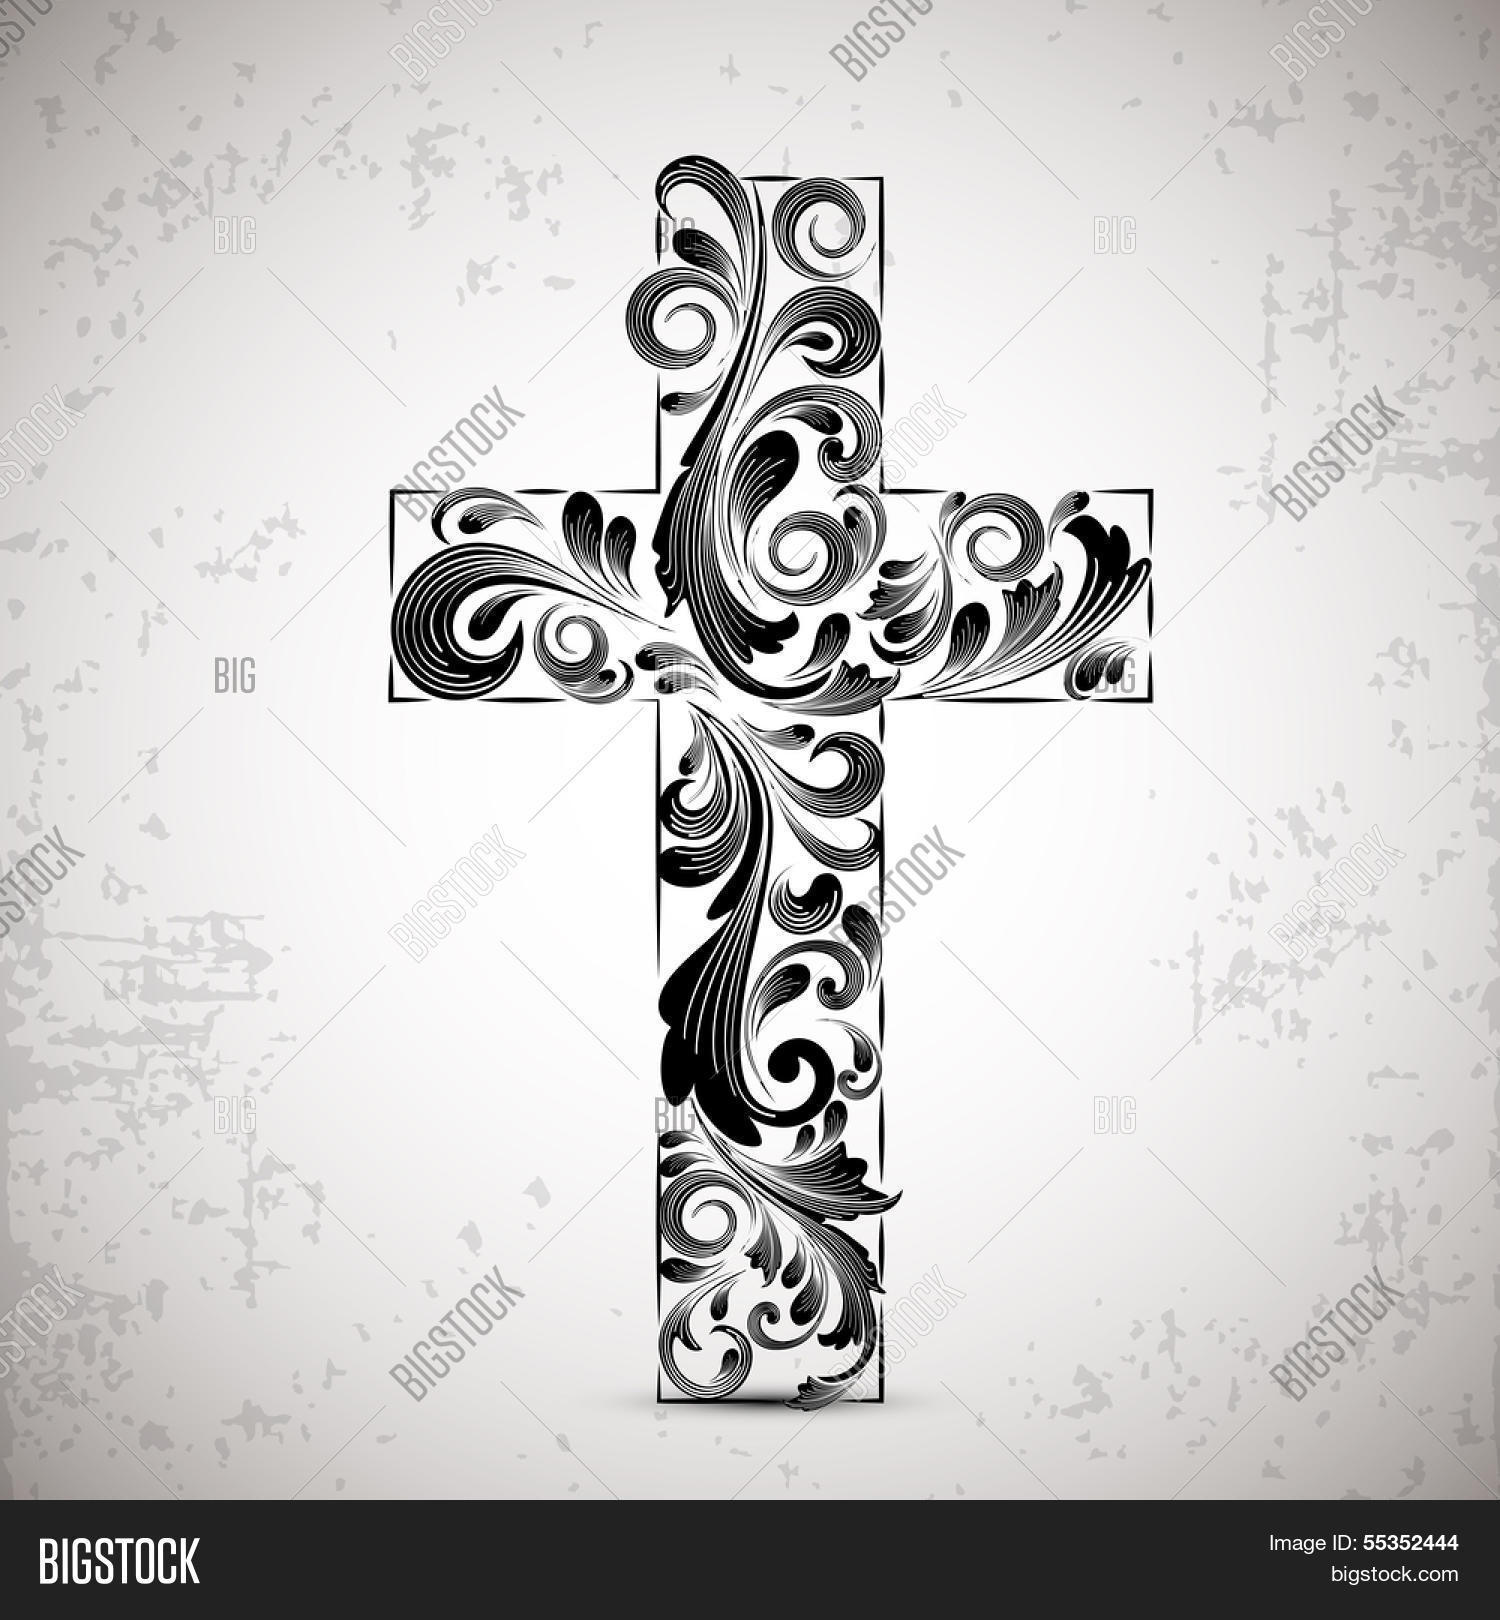 Merry christmas happy vector photo free trial bigstock merry christmas and happy new year 2014 celebration concept with stylish christian cross on abstract background voltagebd Image collections